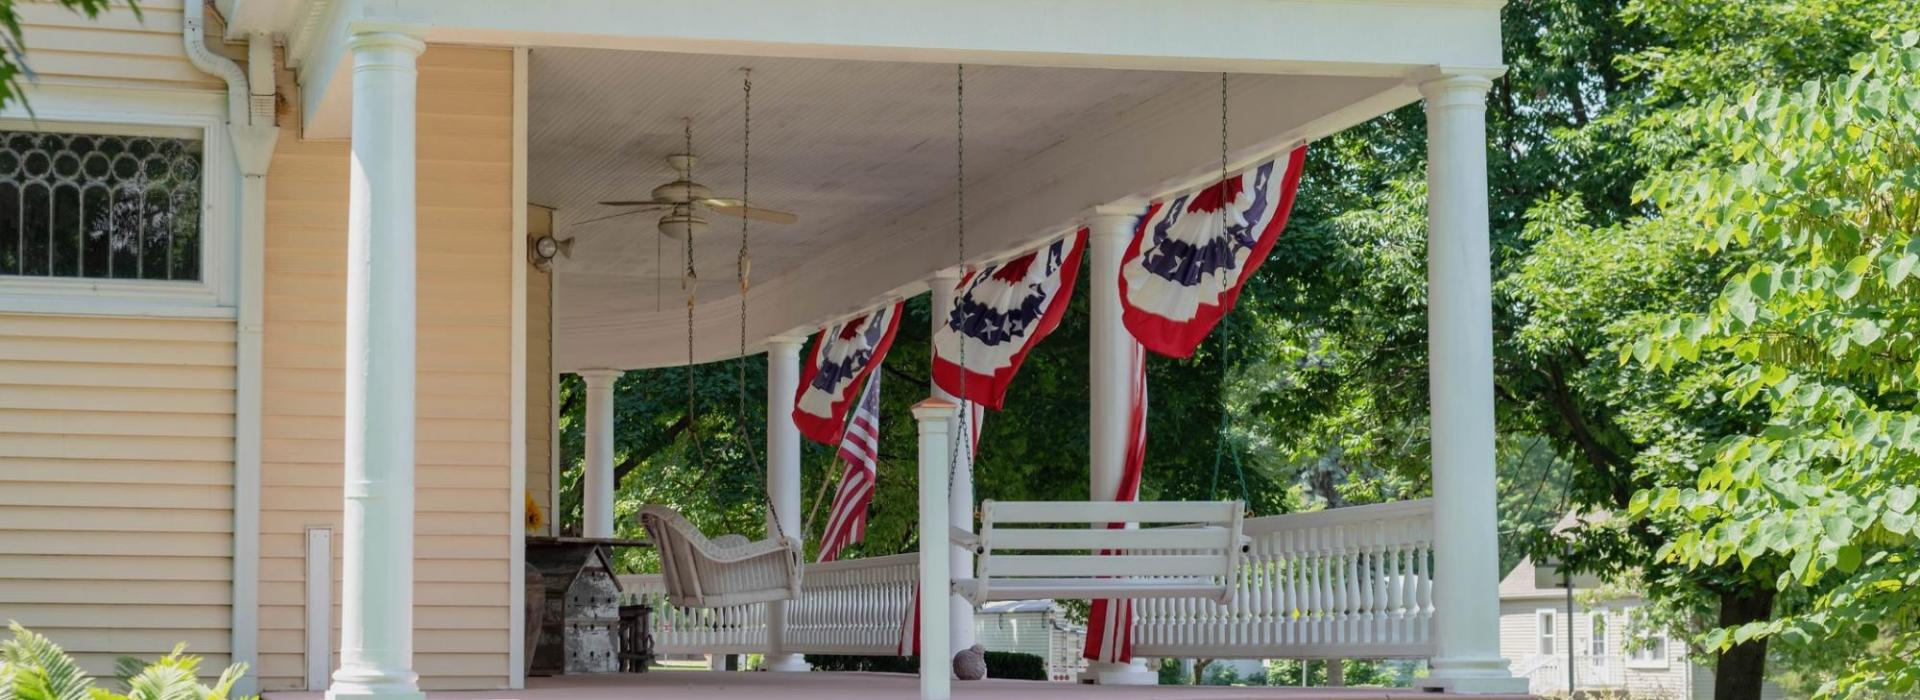 The wide front porch of a historic home is pictured, decorated with American flags.